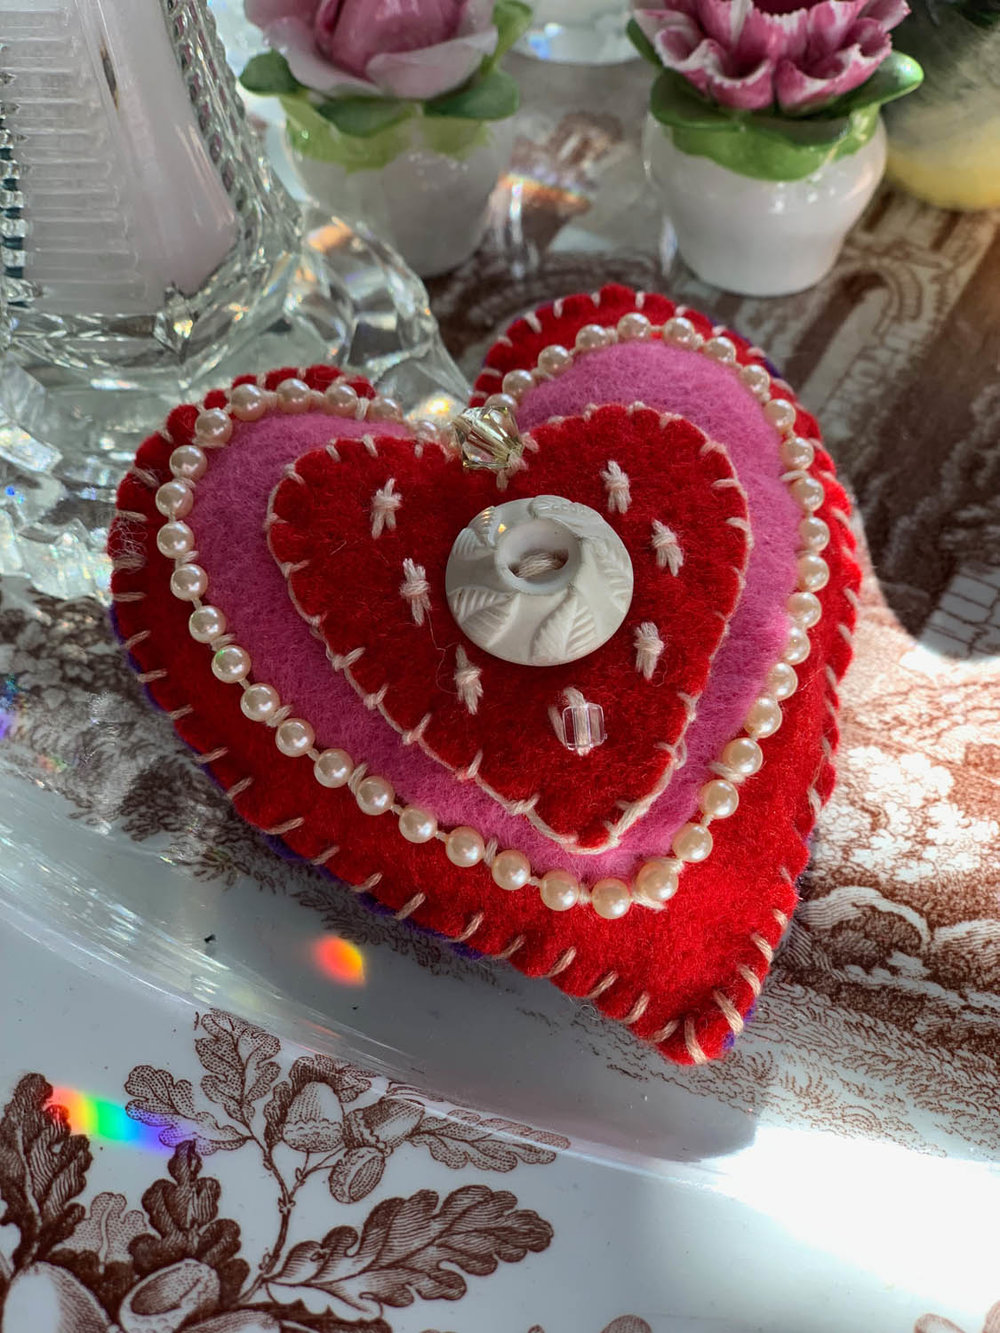 Finished Valentine ornament or pincushion made with embroidery and couched pearl trim on layers of pink and red felt stitched together and stuffed